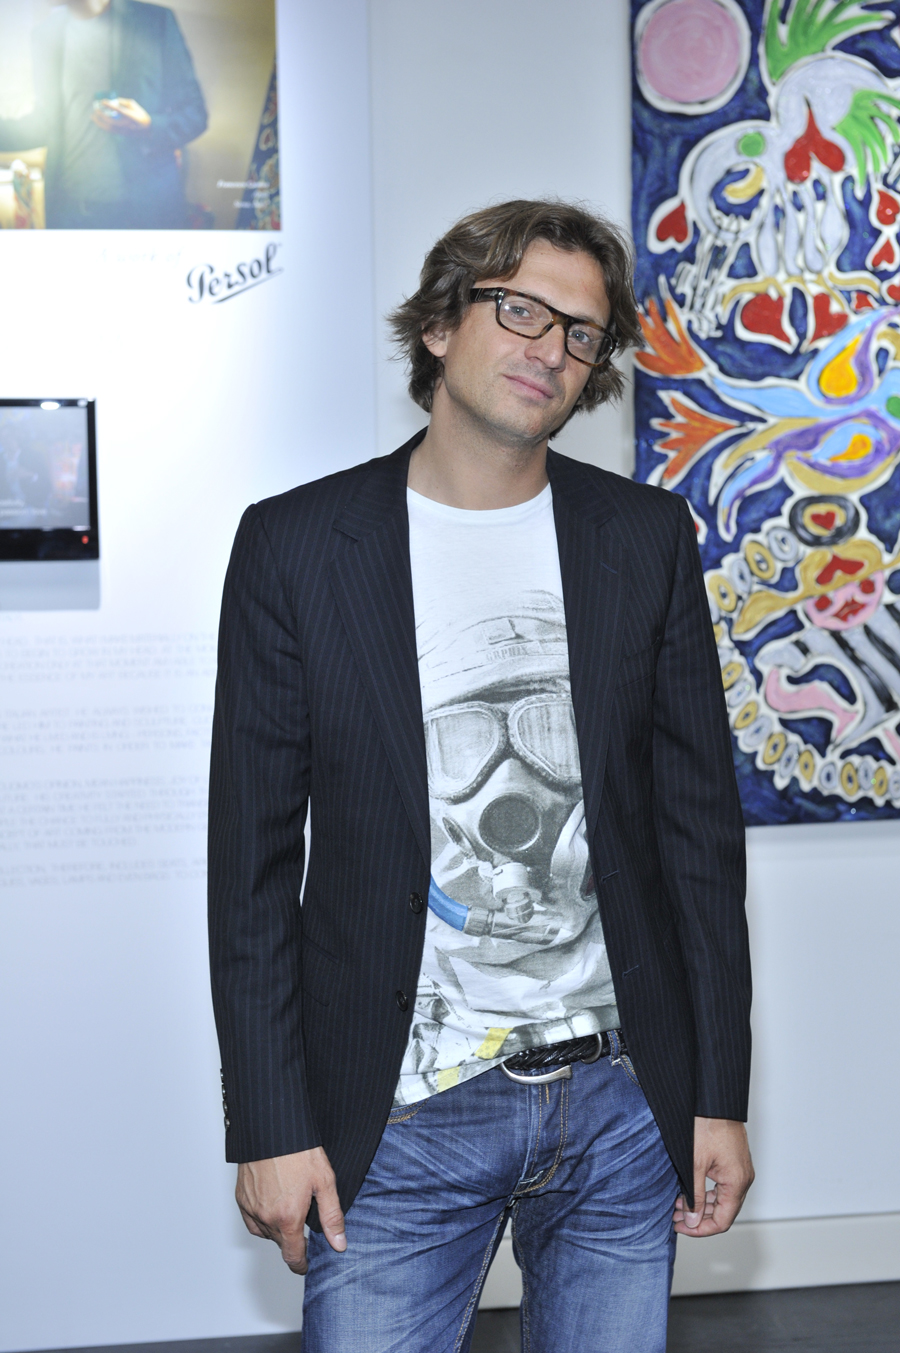 pesrol conteporary artist francesco cuomo conteporary art a work of persol